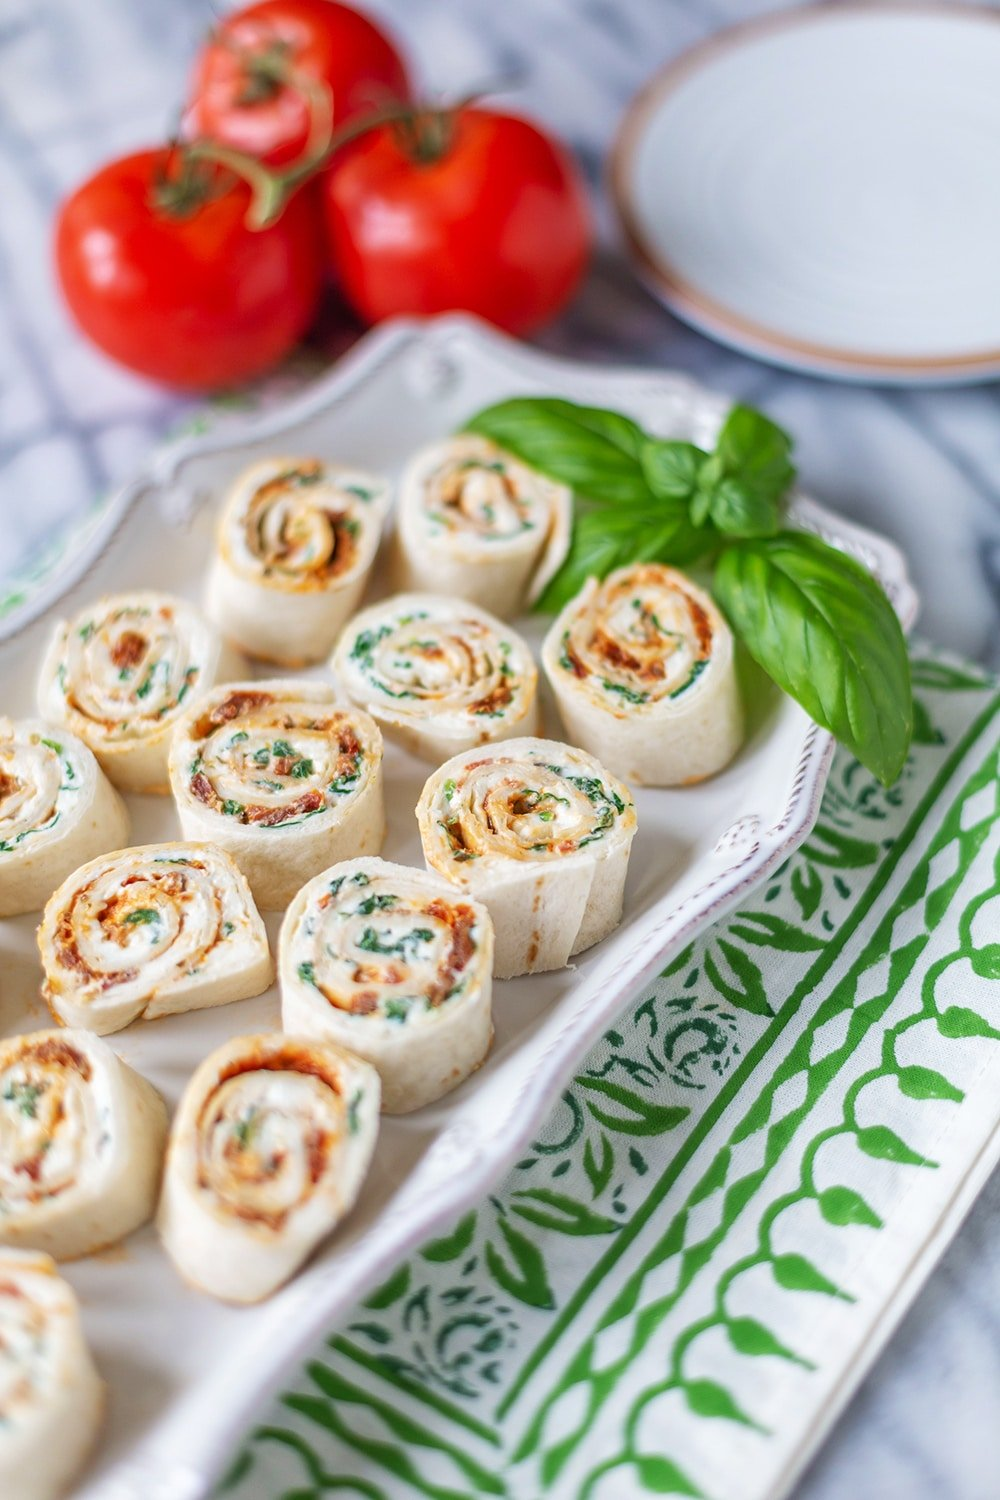 Pesto Pinwheels with Sun-Dried Tomato Pesto